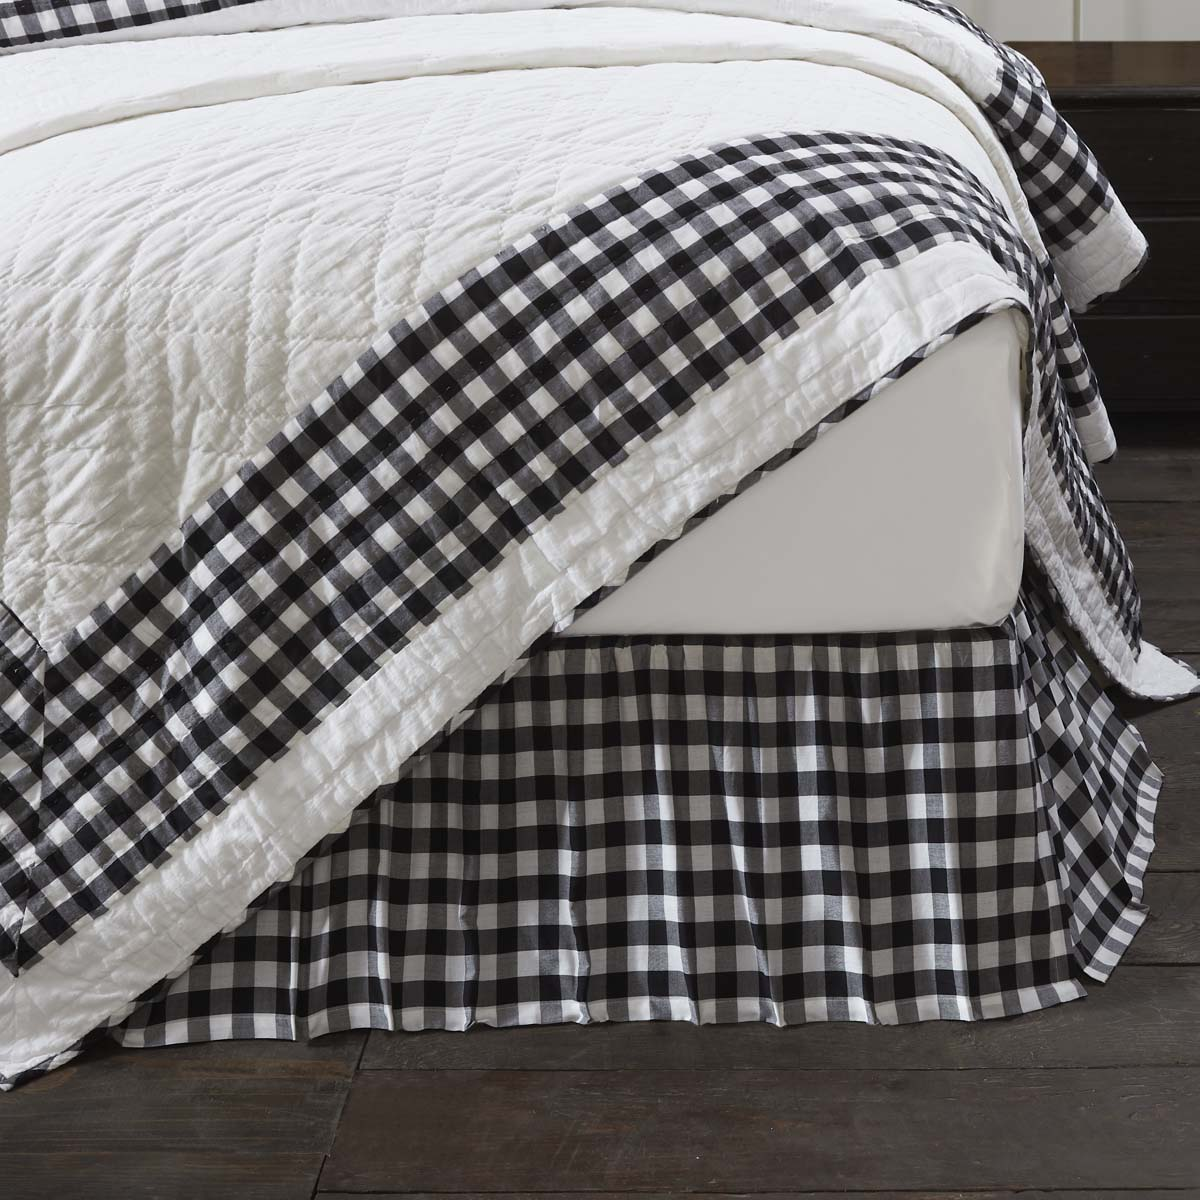 Annie Buffalo Black Check King Bed Skirt 78x80x16